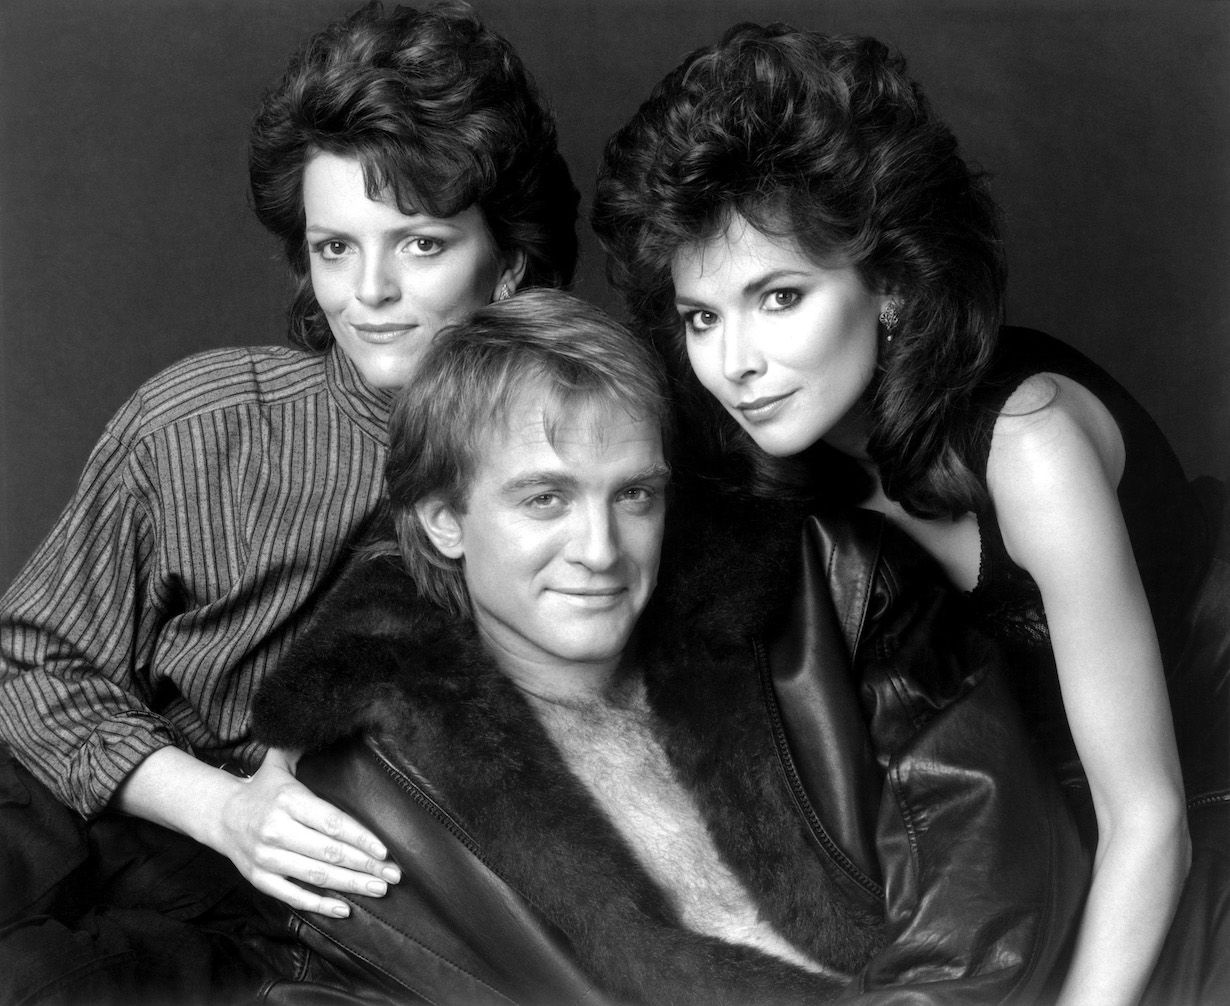 THE YOUNG AND THE RESTLESS, from left: Chris Templeton, Terry Lester, Lauren Koslow, (ca. 1980s), 1973-, ©CBS/courtesy Everett Collection